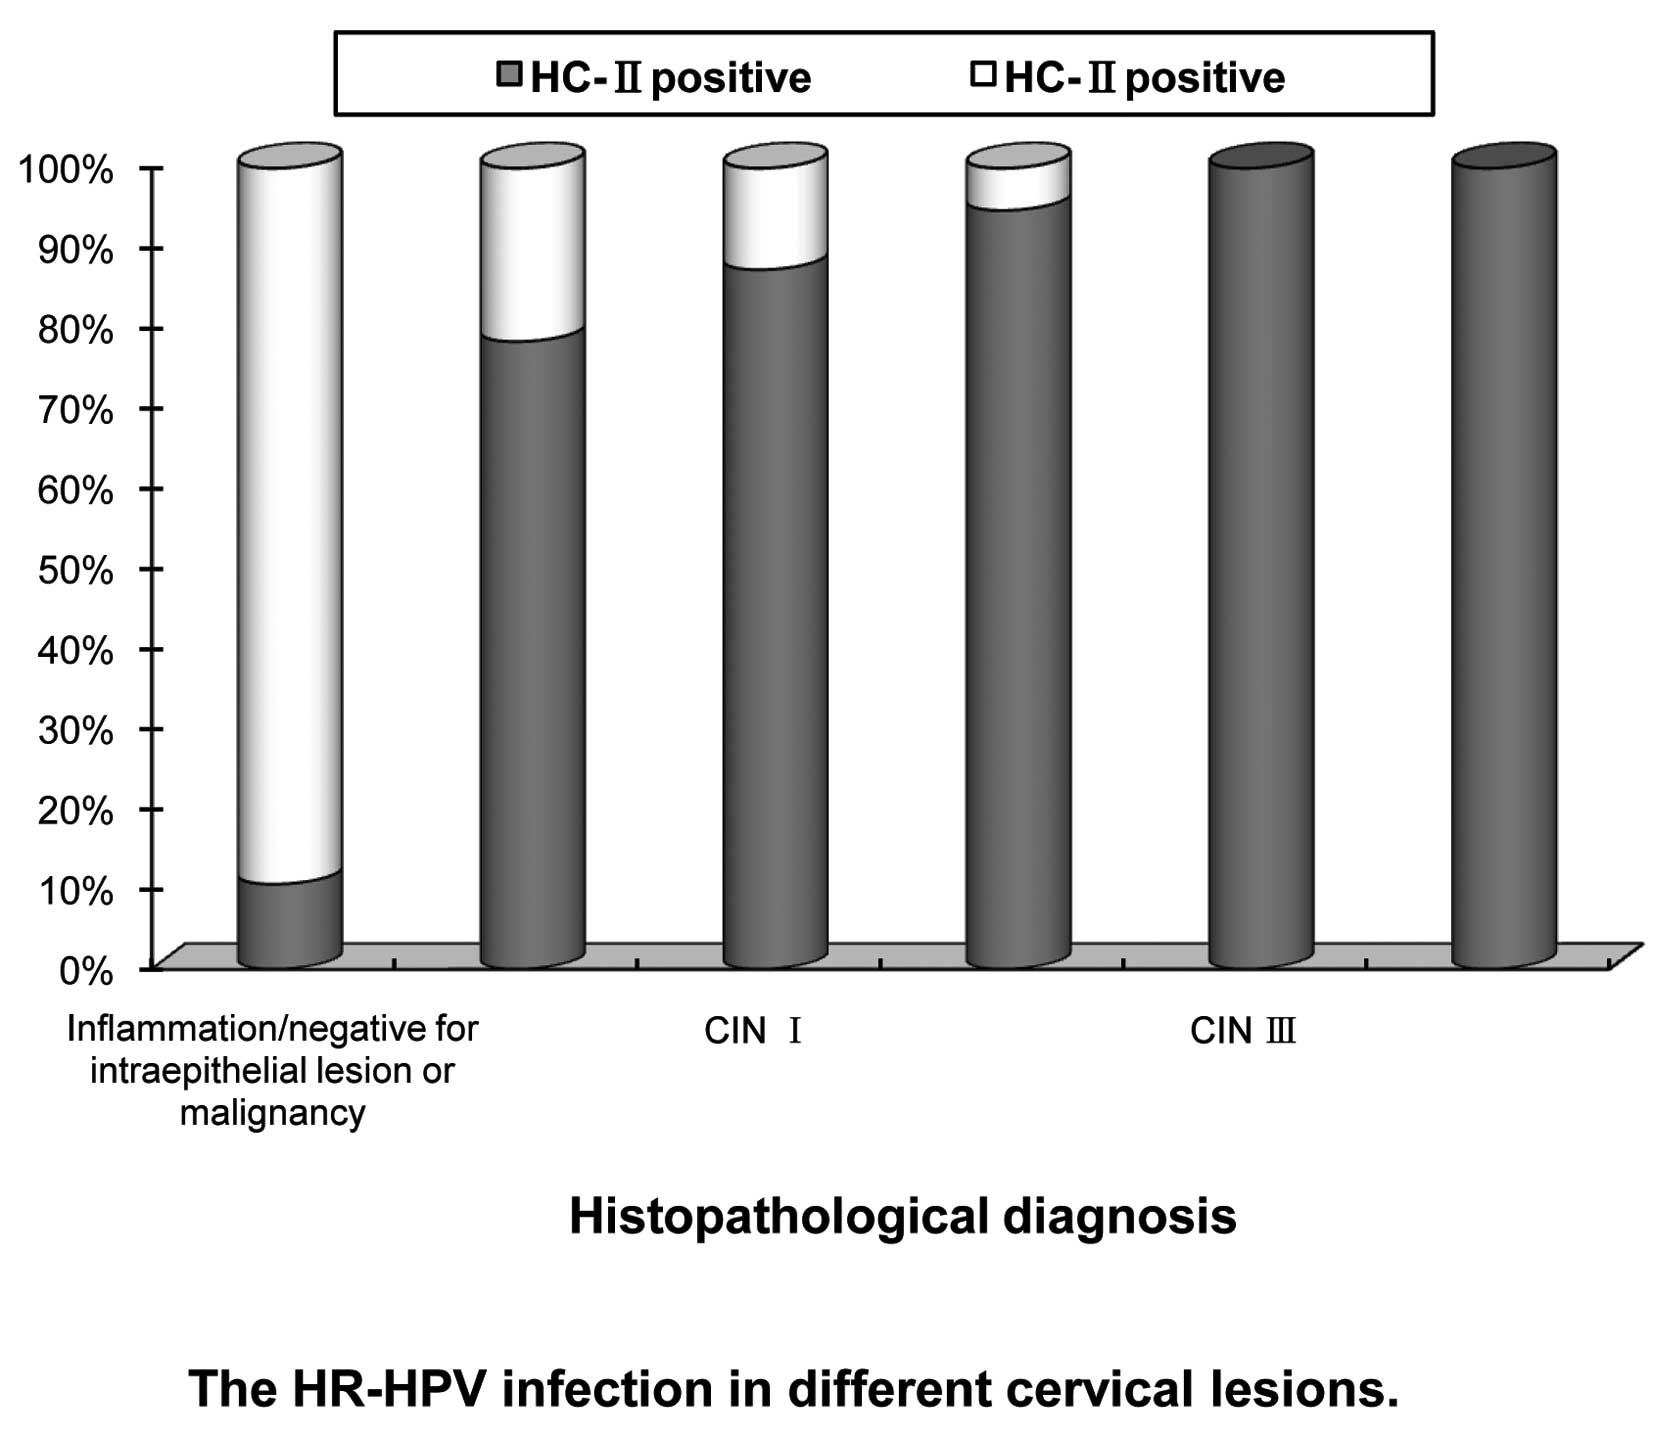 hpv high risk dna hybrid capture 2 test